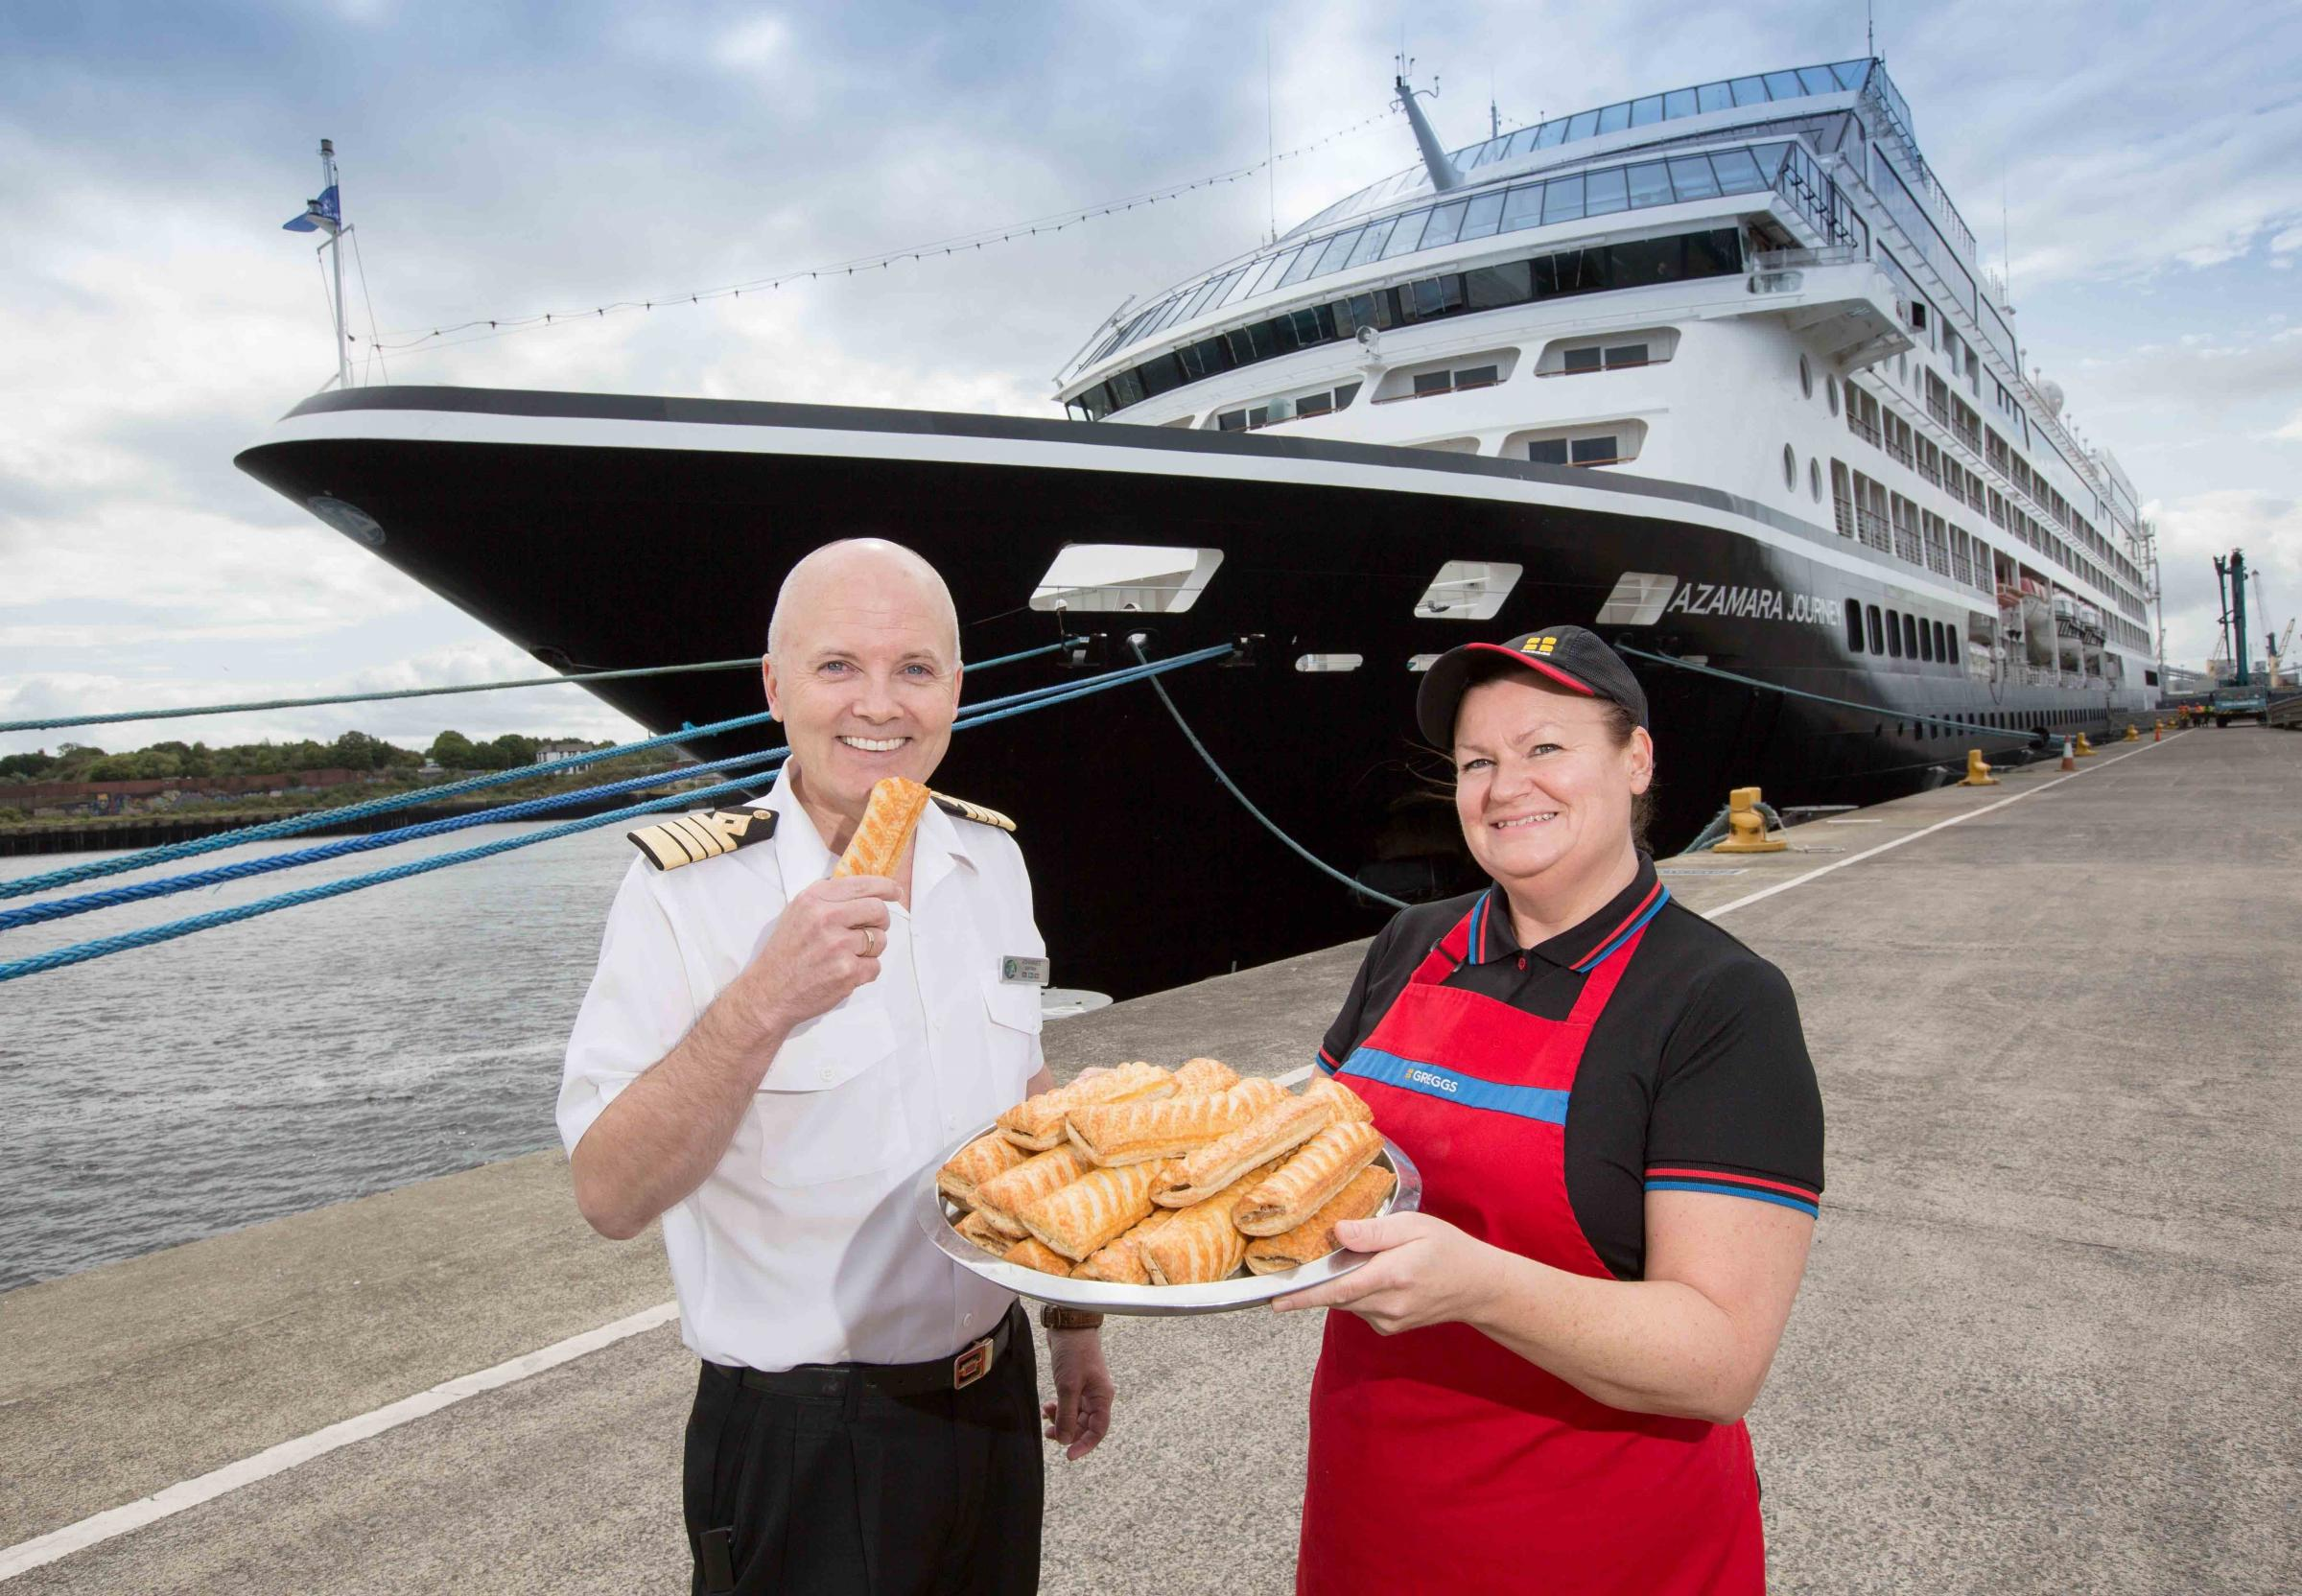 Azamara Journey orders Greggs while docked at North Shields